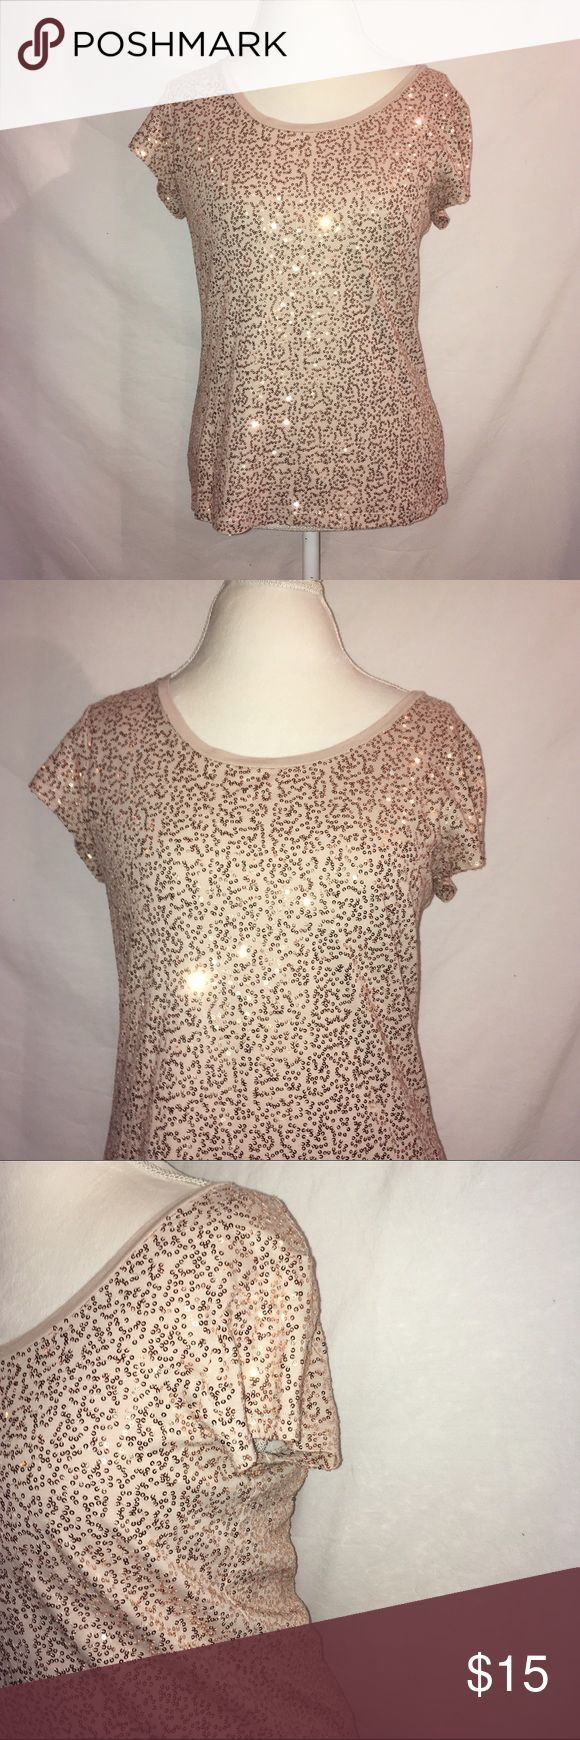 Sequin Calvin Klein Top Tan short sleeve t-shirt with gold sequins. Is in excellent condition. 100% cotton Calvin Klein Tops Tees - Short Sleeve